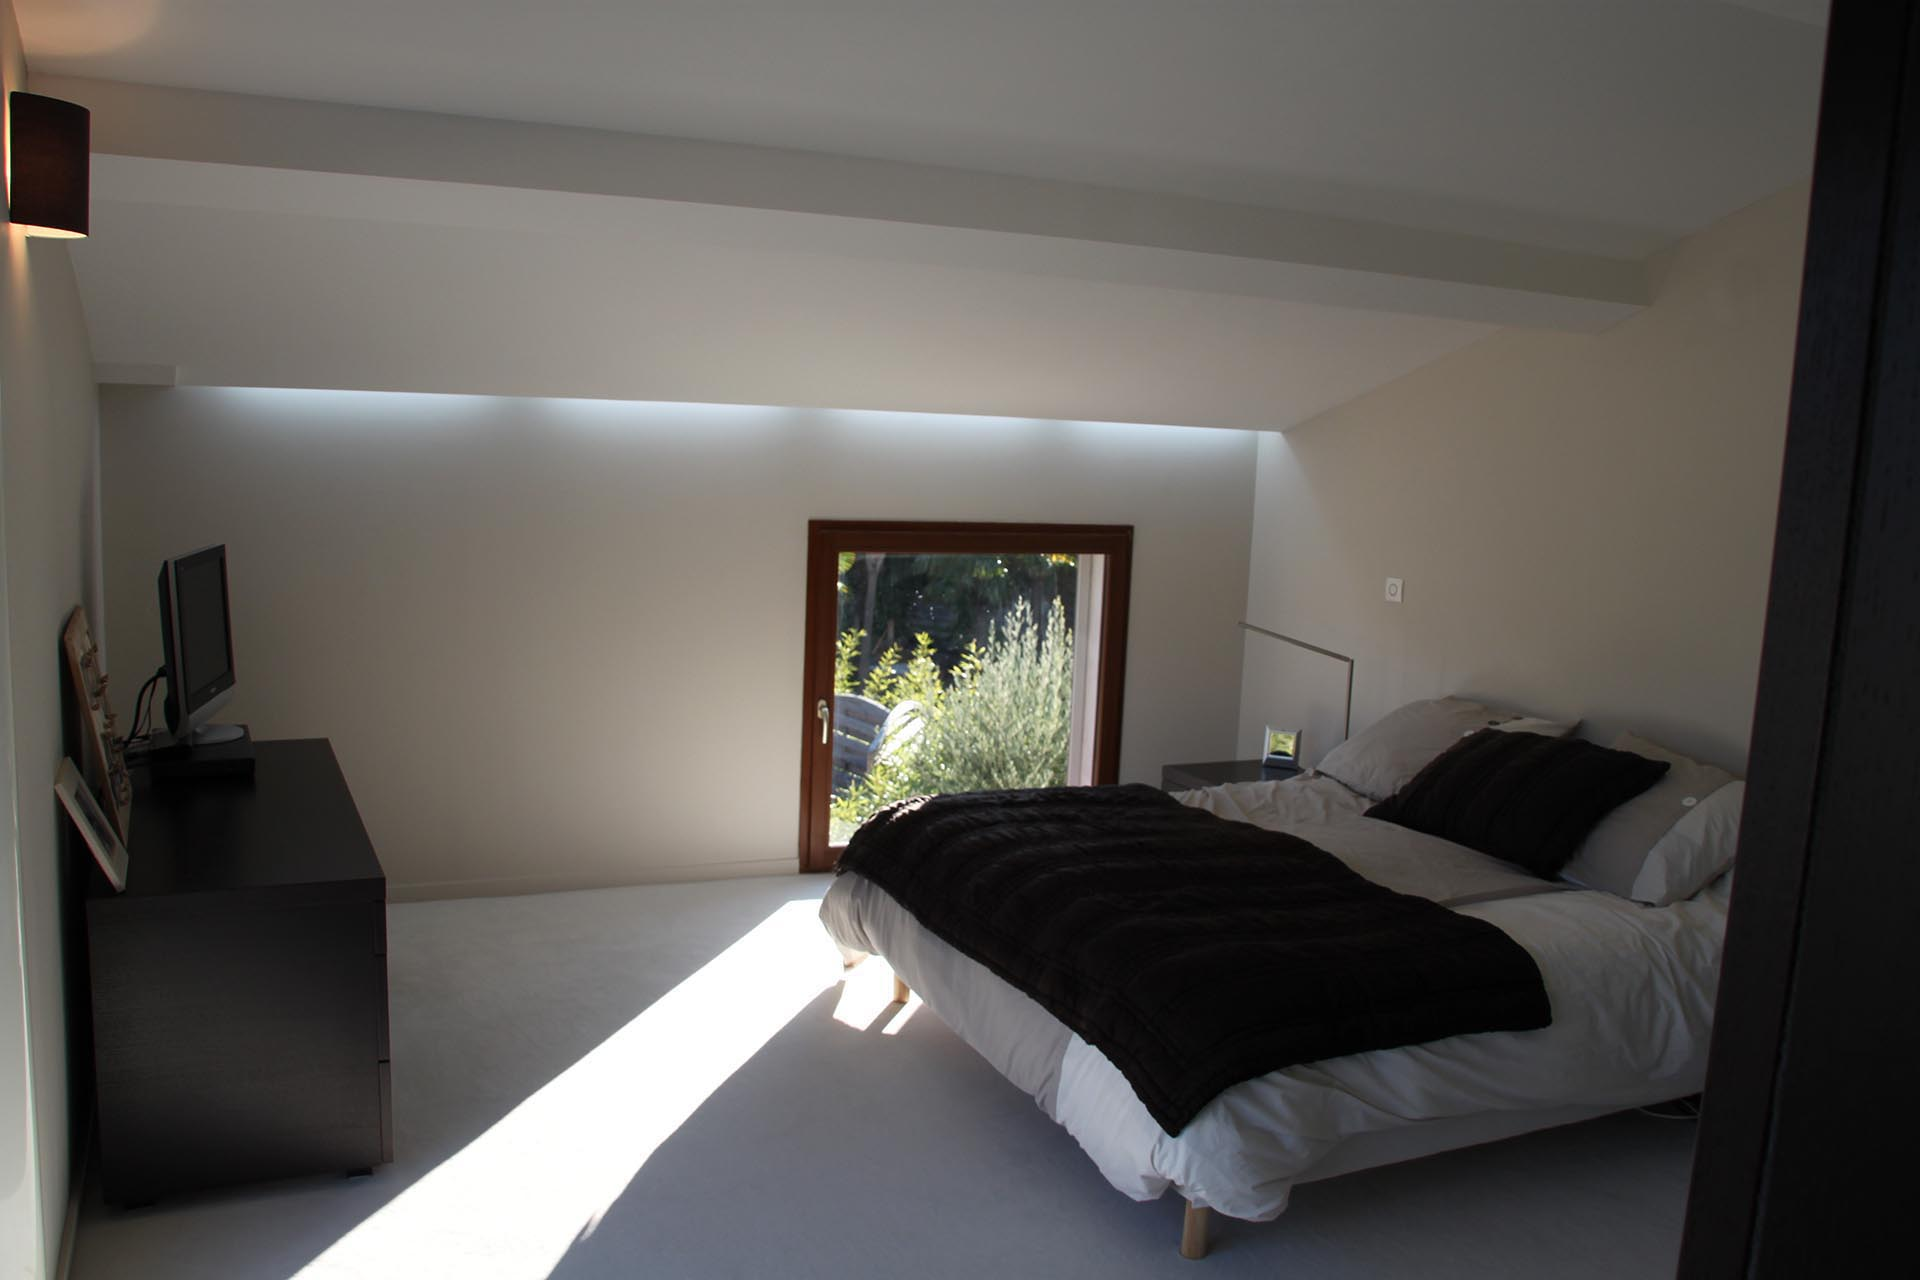 Architecte marseille transformation d 39 une maison for Ambiance chambre parentale